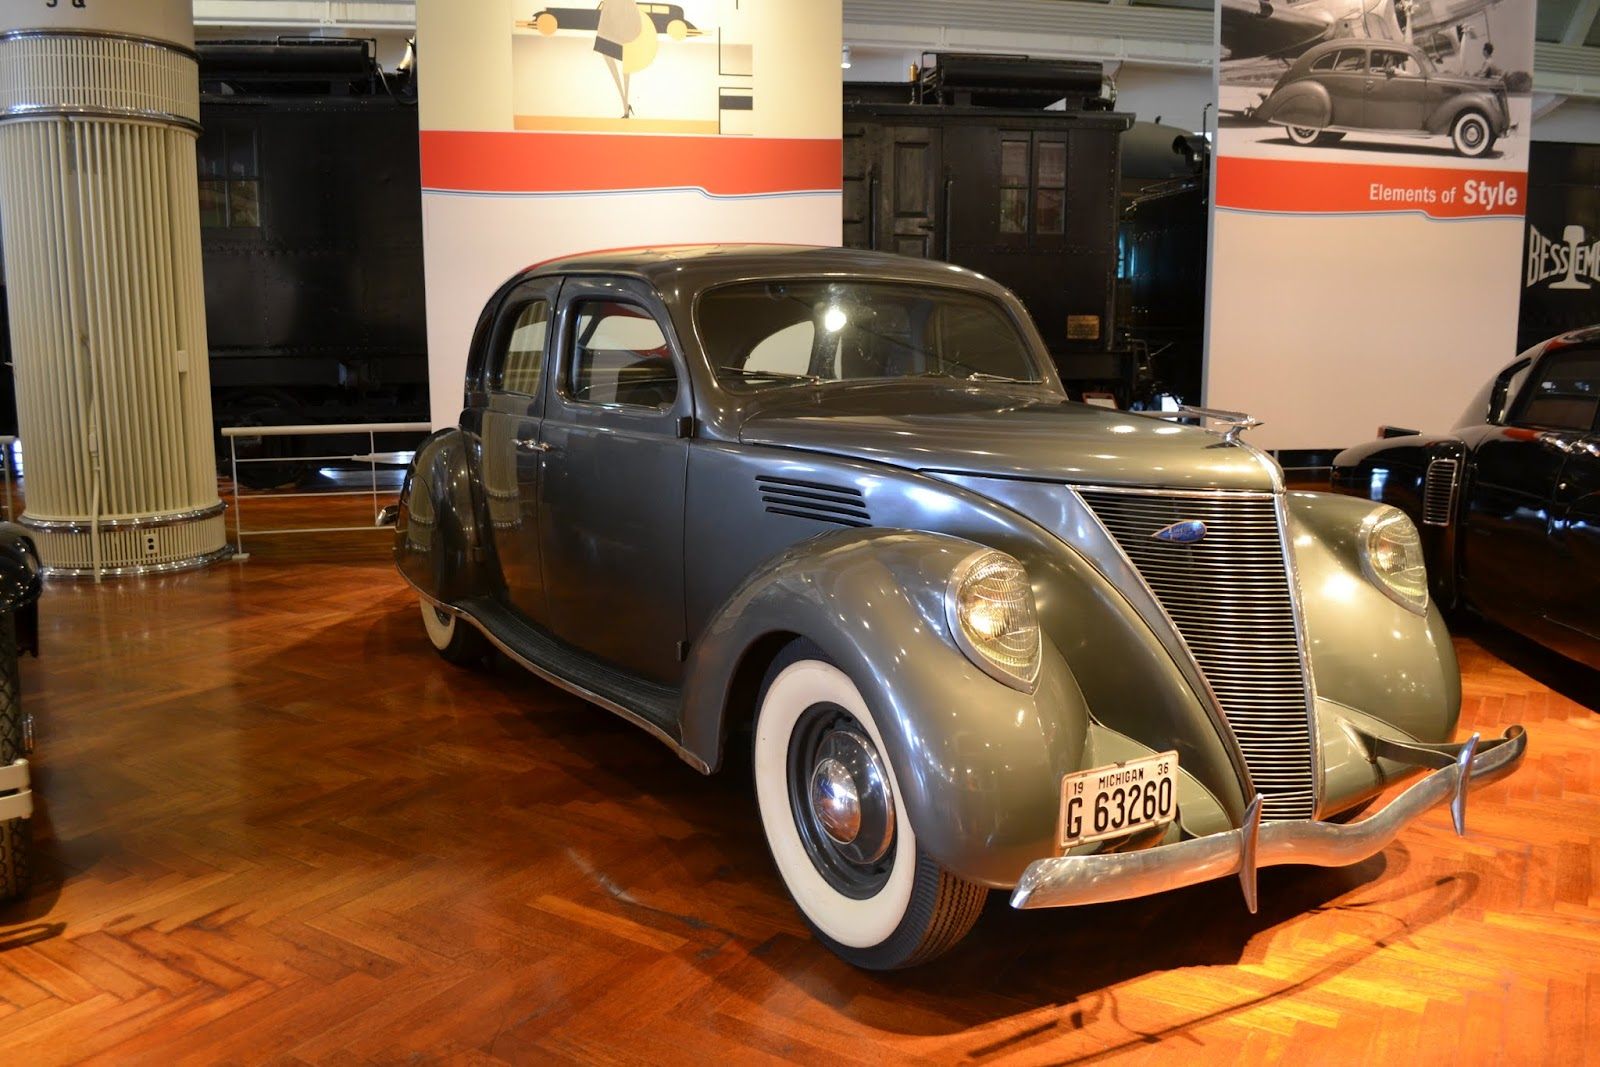 1936 Lincoln Zephyr. Музей Генри Форда. Дирборн, Мичиган (Henry Ford Museum, Dearborn, MI)